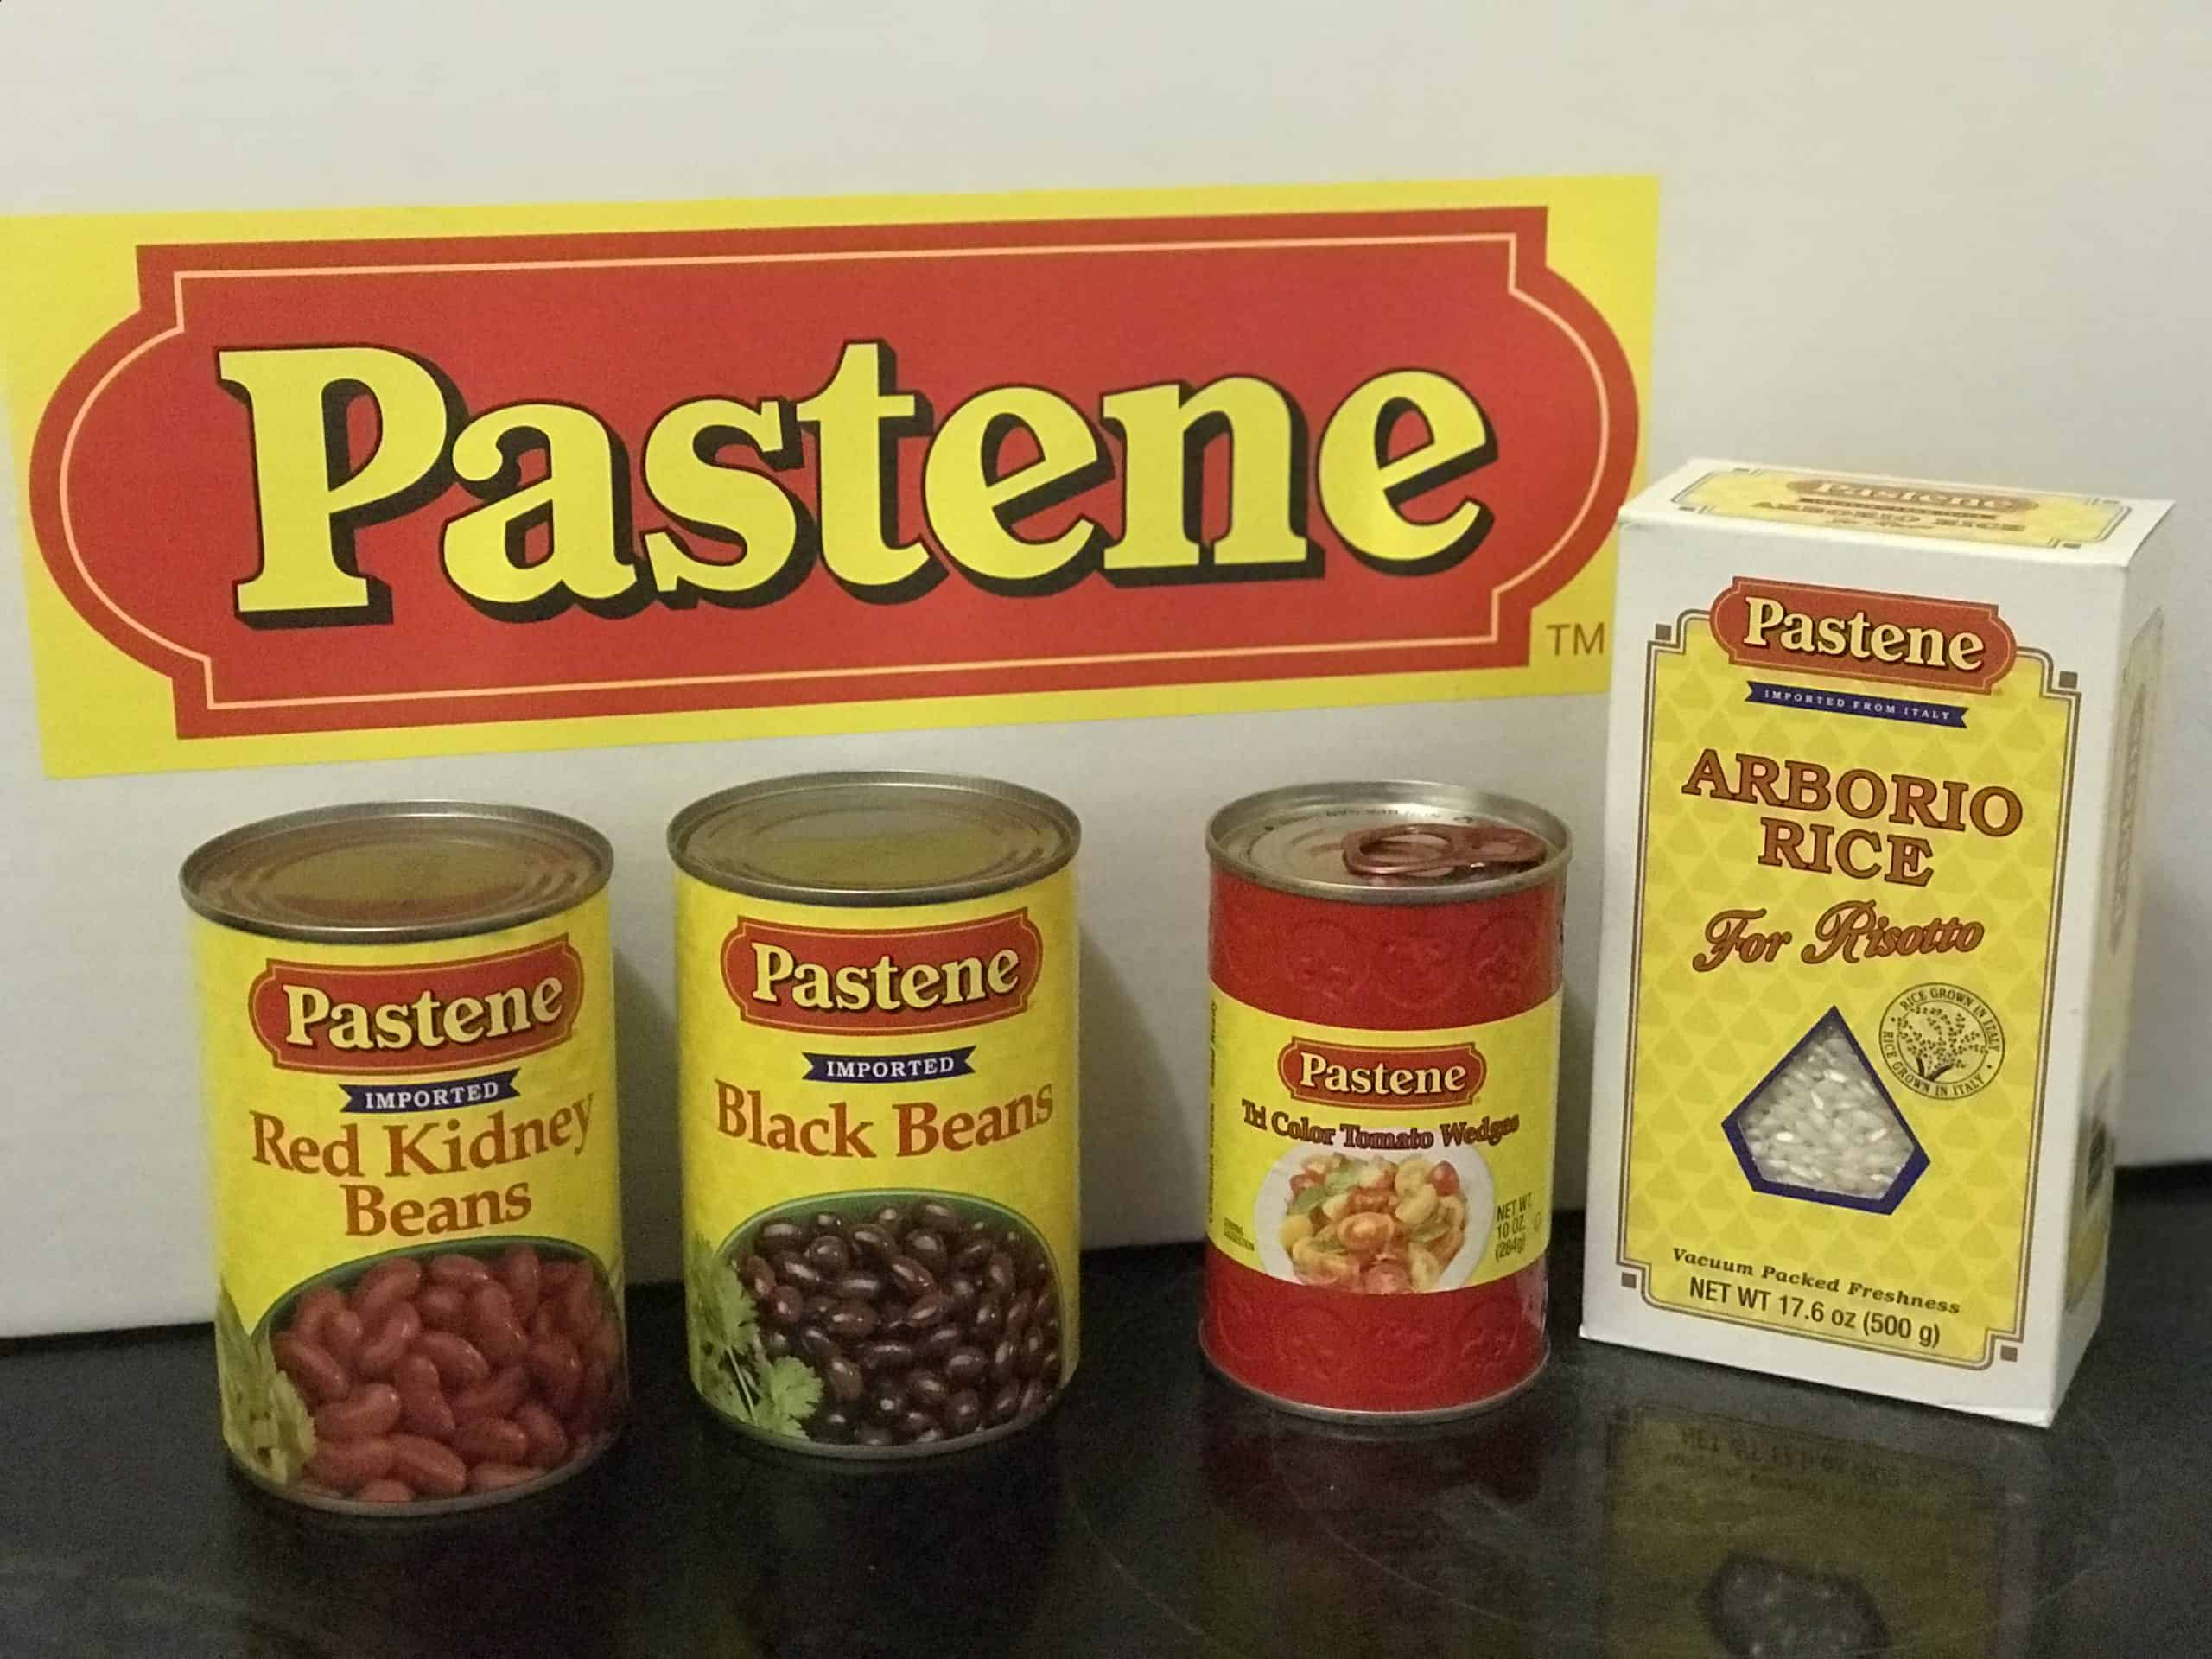 The Perfect Meal for Hispanic Heritage Month with Pastene